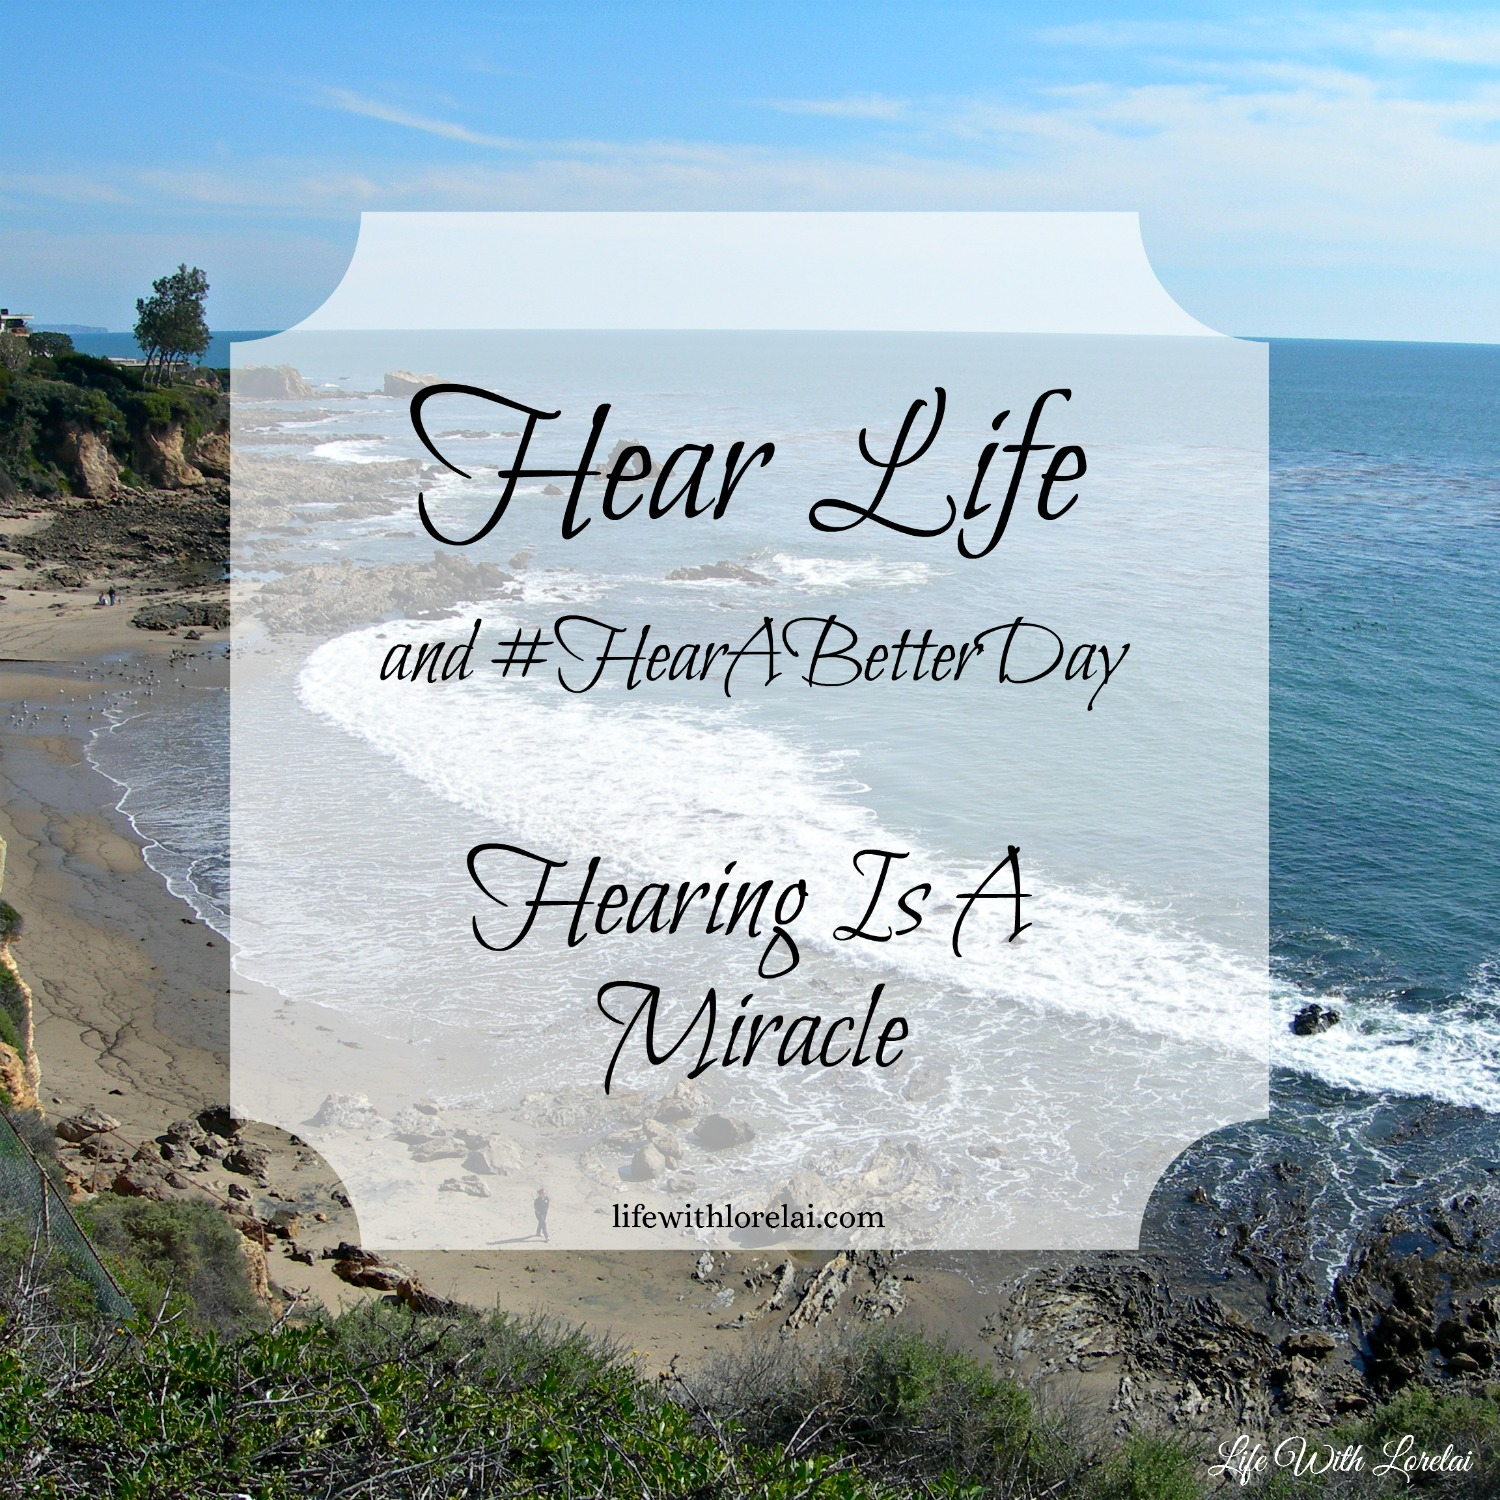 Hear Life and #HearABetterDay with Miracle-Ear. Hearing is a miracle, Schedule a FREE hearing test today. #Mircale-Ear #hearingloss #hearingaid #free AD